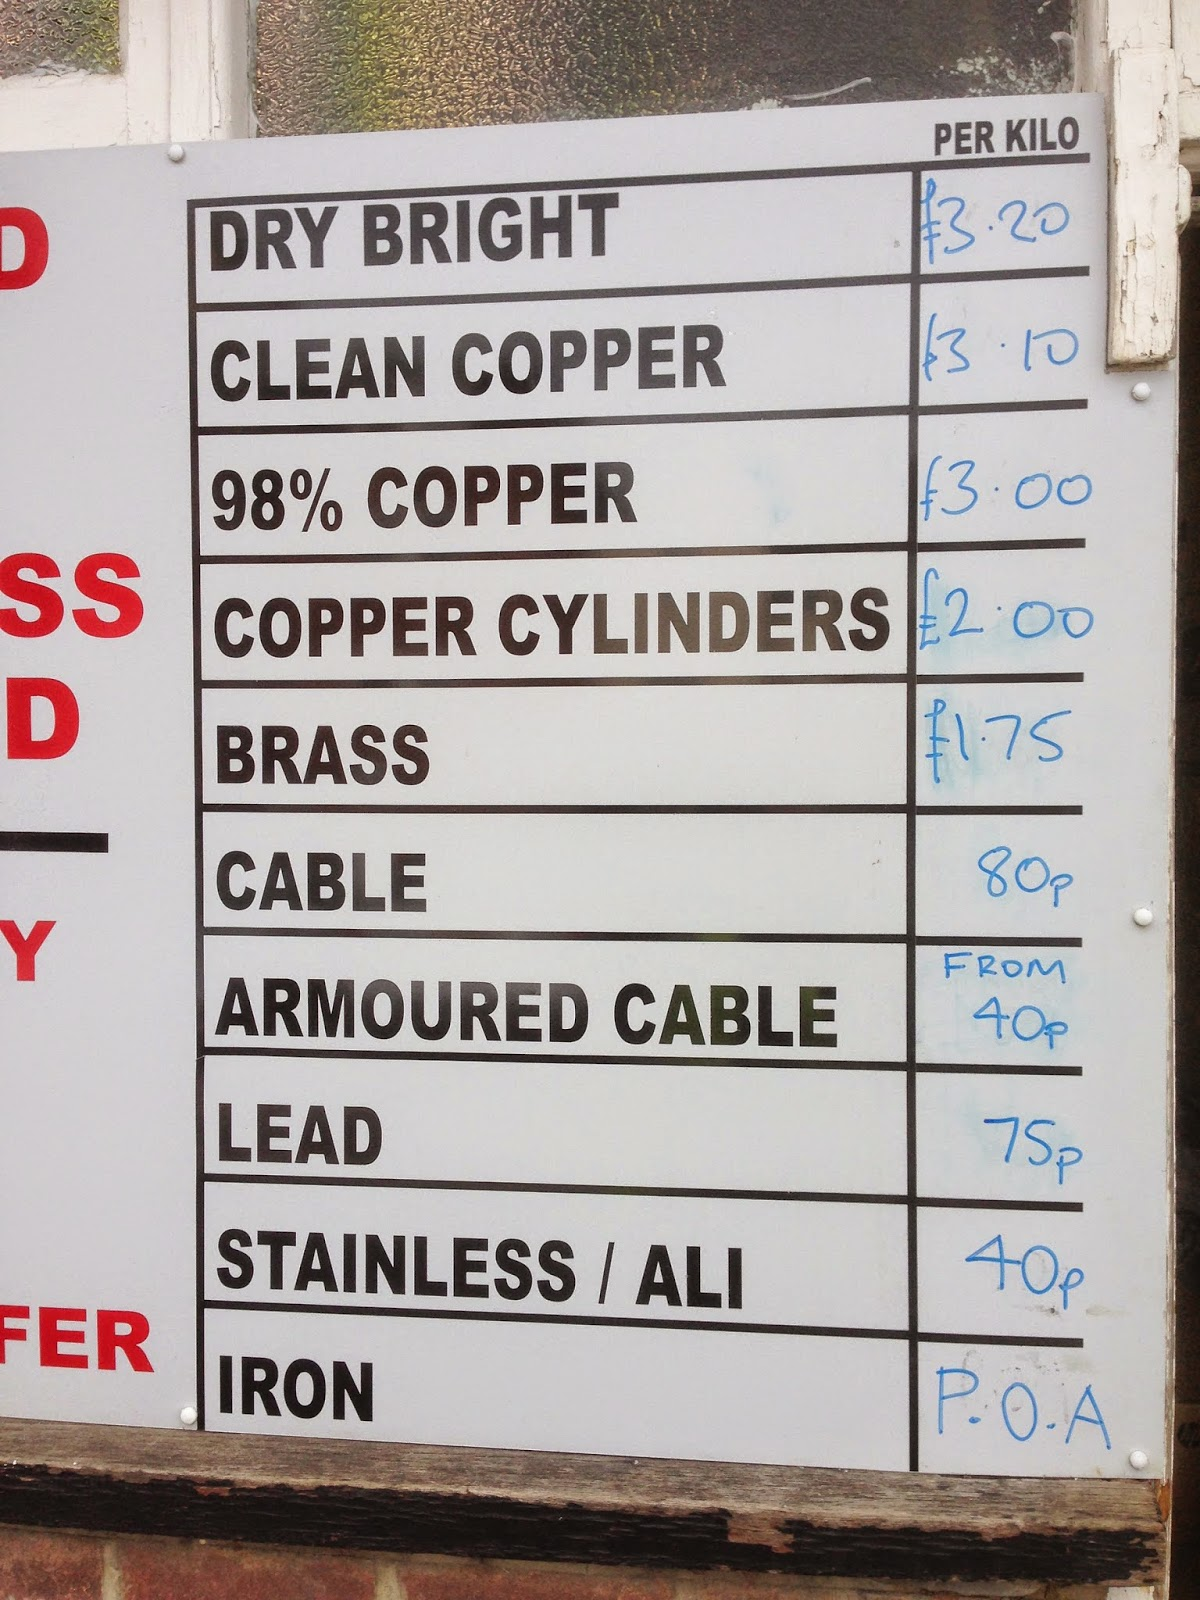 WE BUY COPPER, LEAD, BRASS & ALL TYPES OF CABLE CALL 07411995536 : 2014